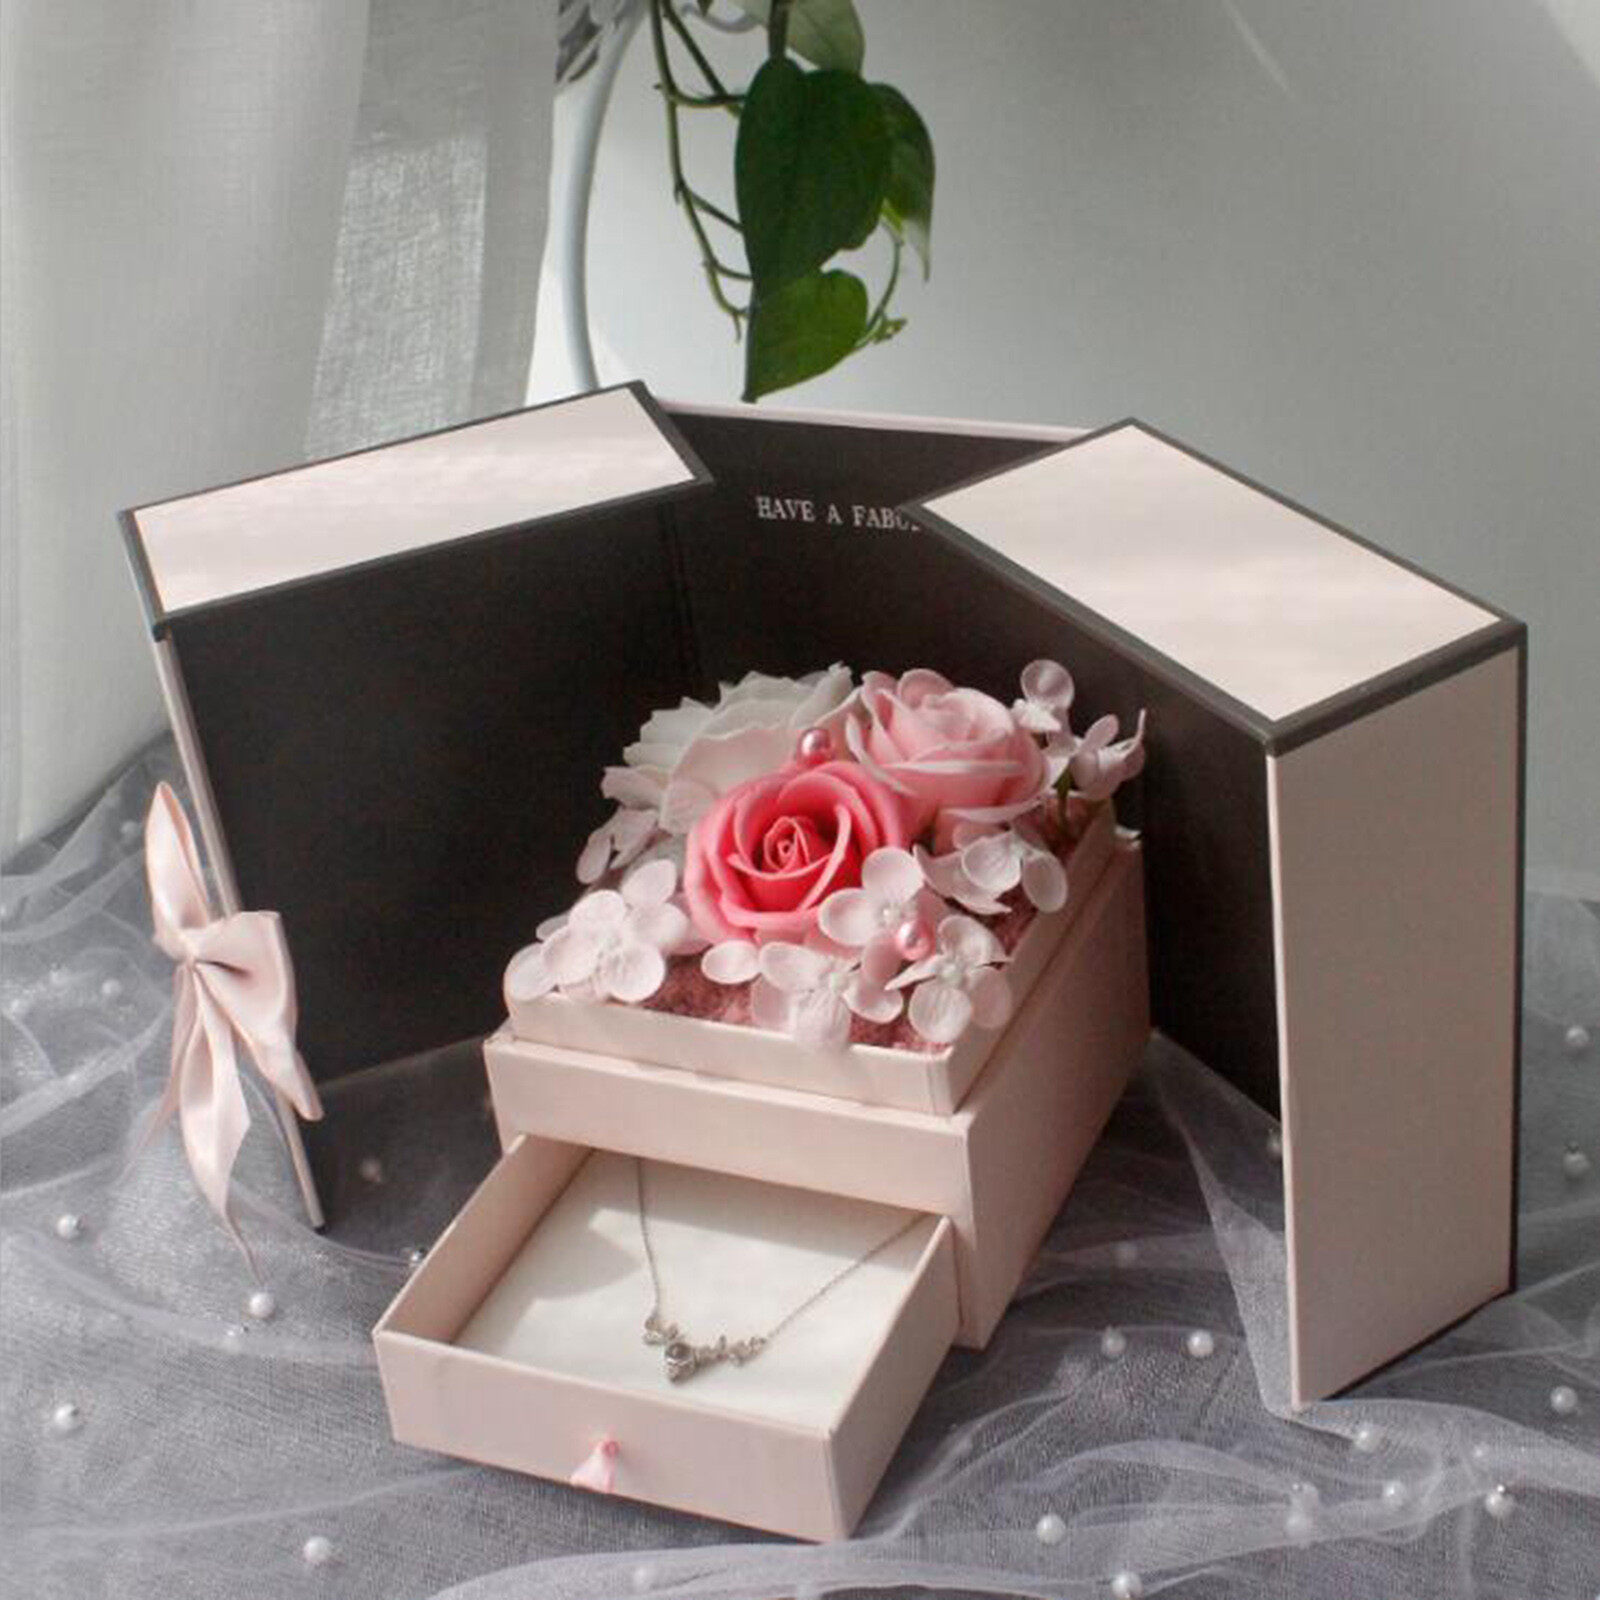 Valentines Day Gift Soap Rose Flower Gift Box Bouquet Jewelry Gift Box Valentine S Day Gift Box Gift For Girlfriend 1x Bouquet Gift Box Lazada Ph